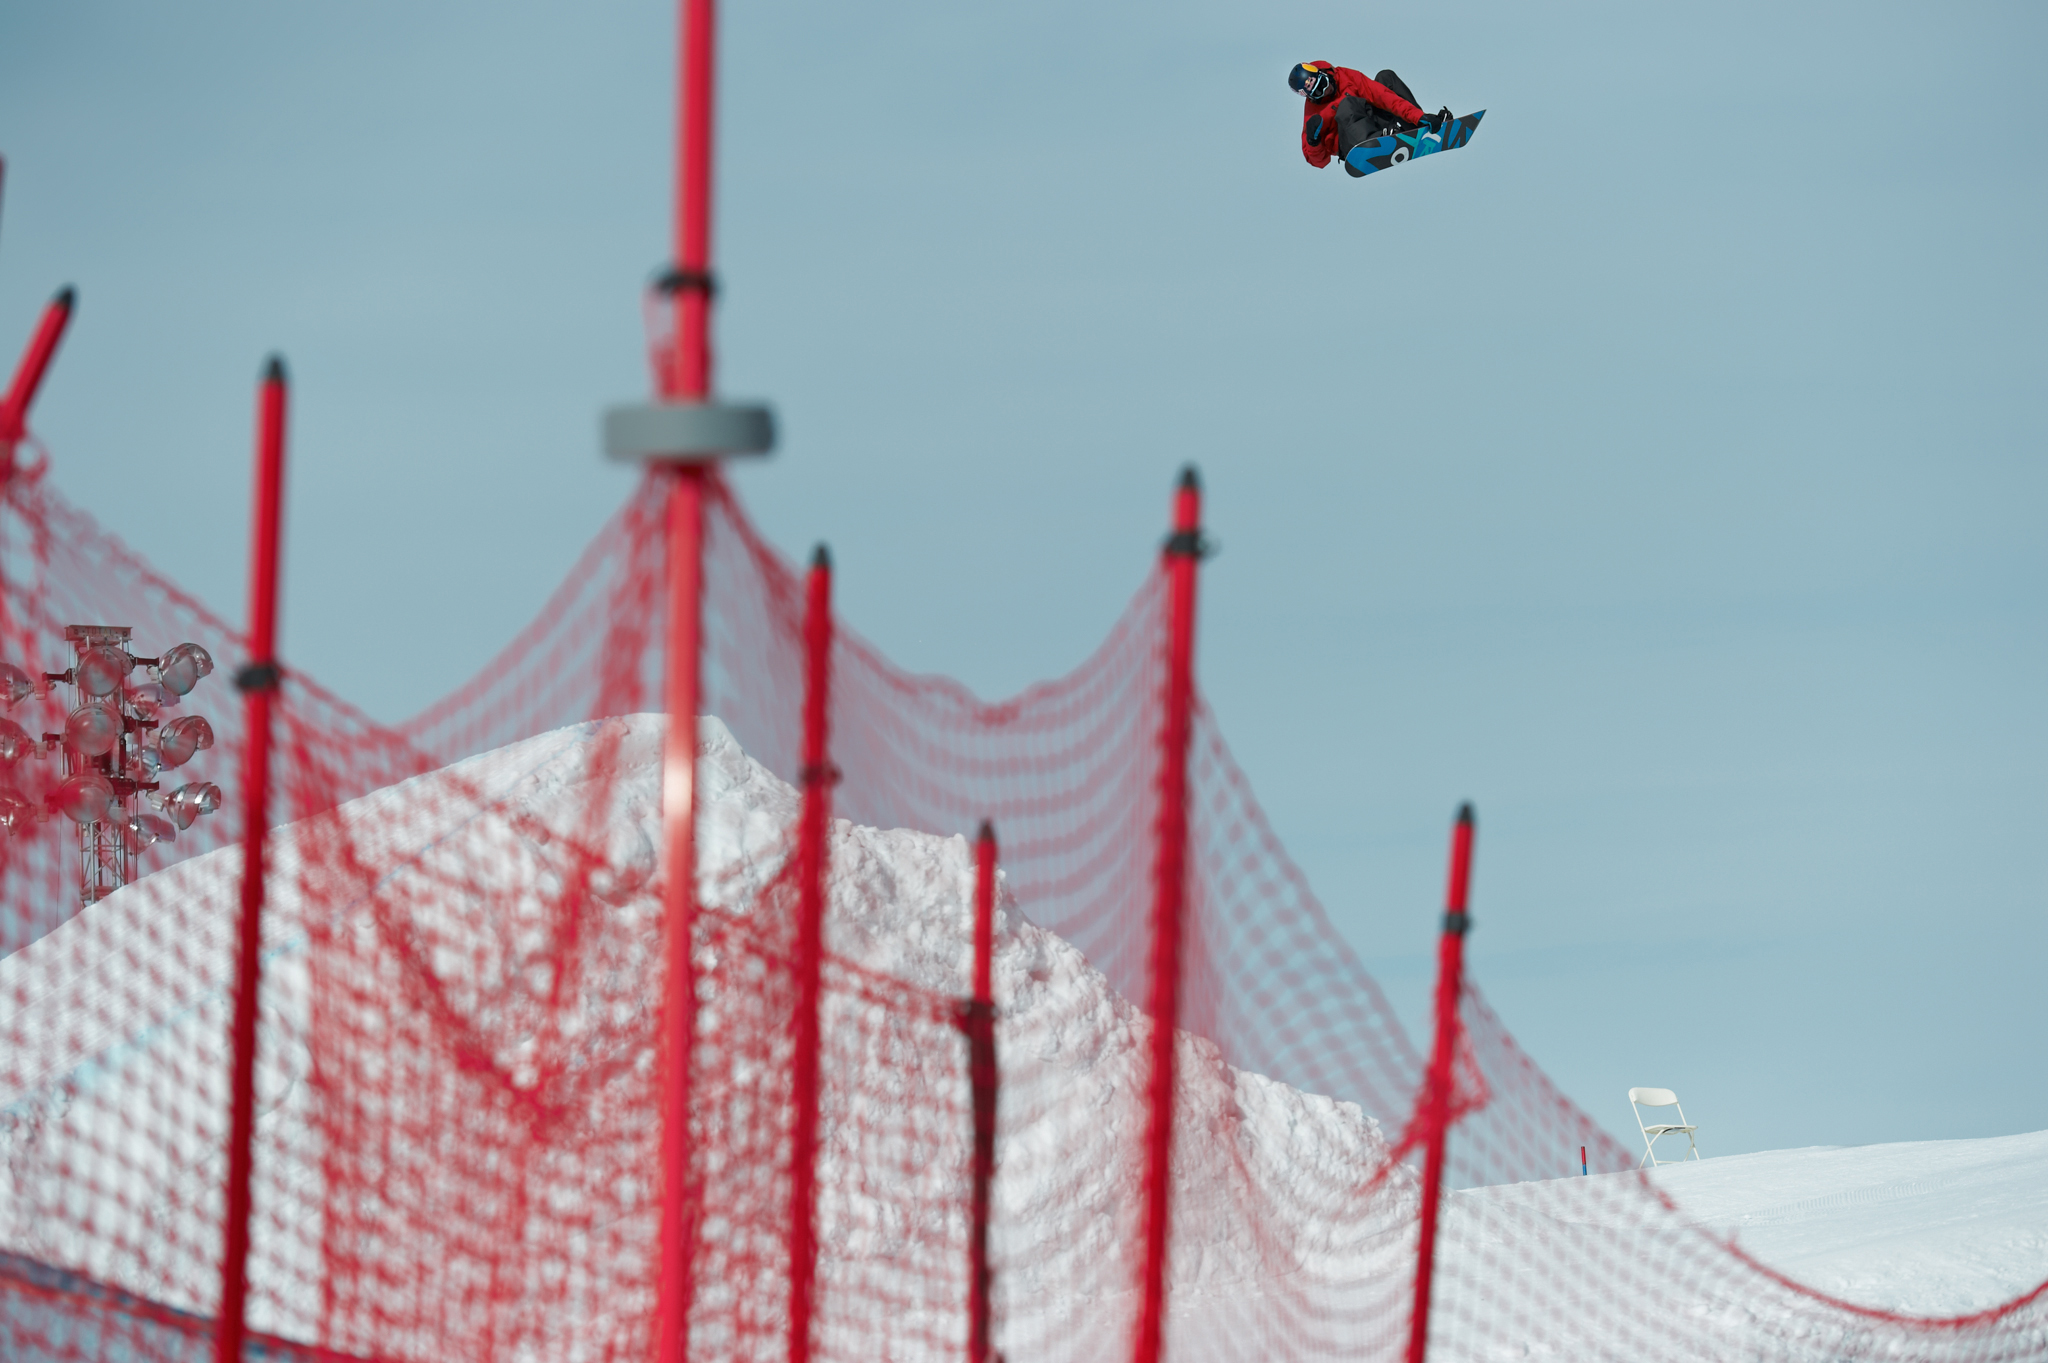 And then there's this guy. McMorris showed up as a rookie in 2011 and nabbed Slopestyle silver. Then he went off and became the first person to land a backside triple cork 1440, came back to the X Games in 2012 and won gold in both Slopestyle and Big Air. Can he do it again in 2013?